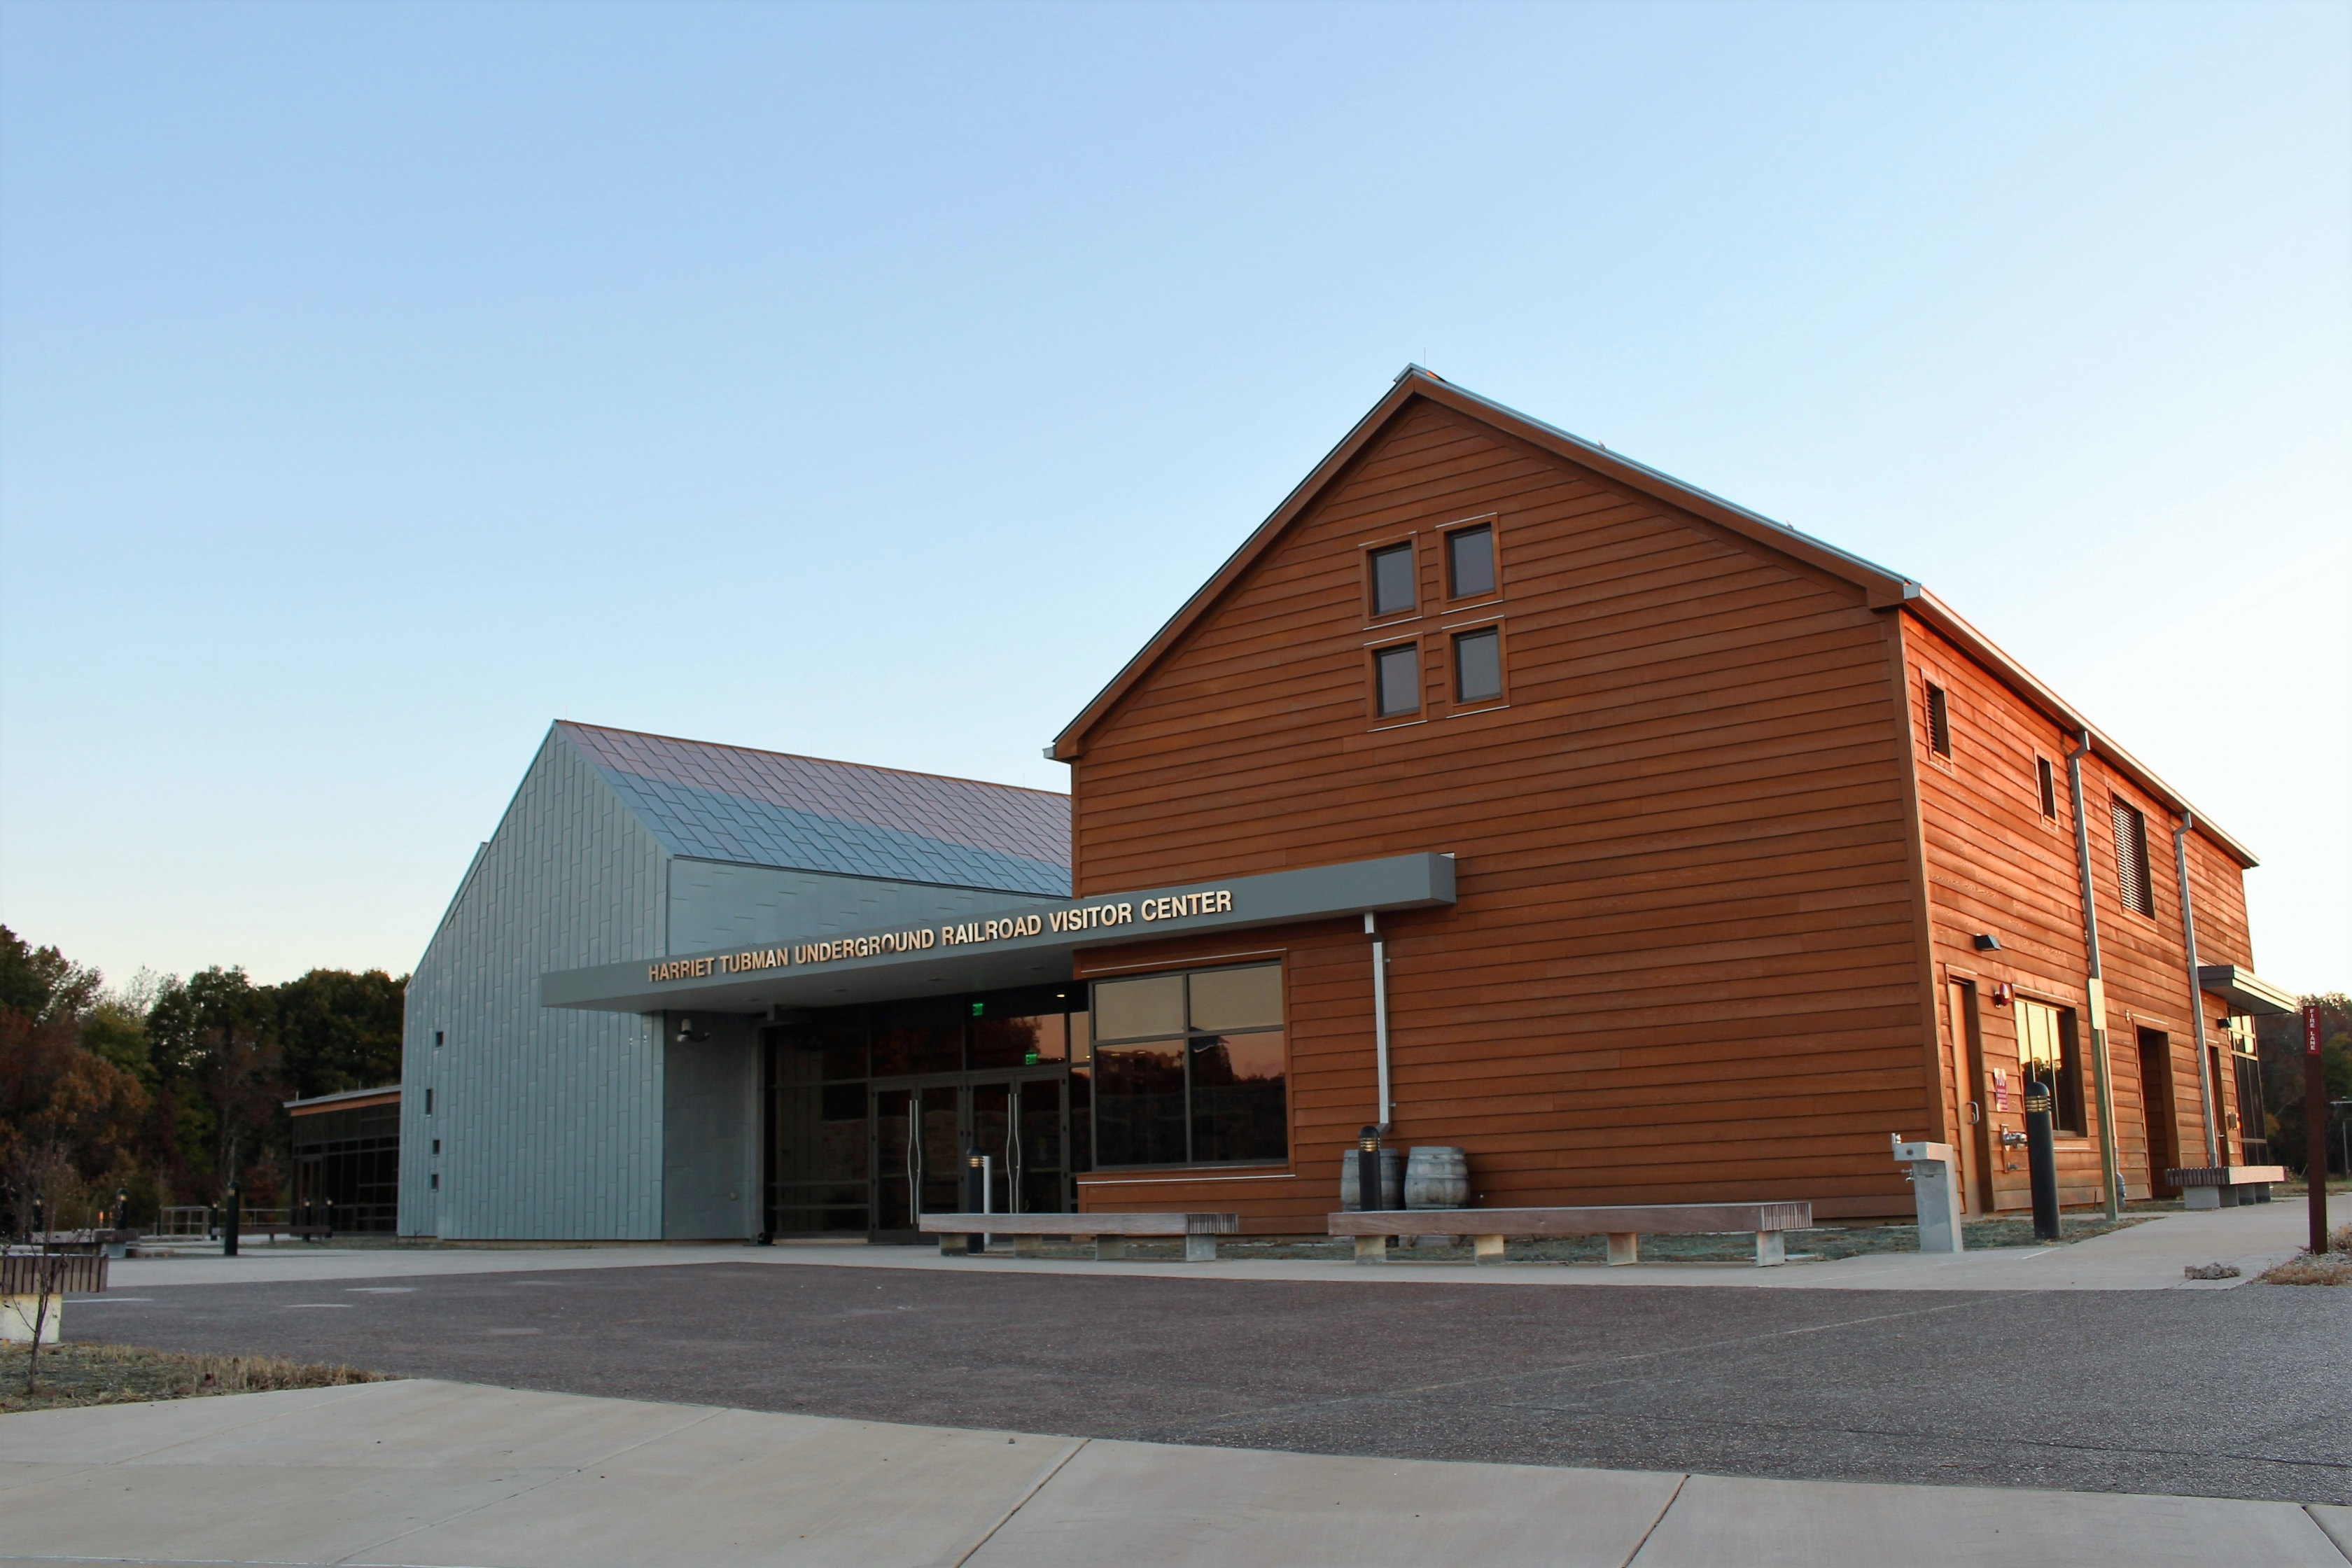 Front view of the visitor center, with two barn-like fronts visible, one in orange wood panel and one in metallic gray.